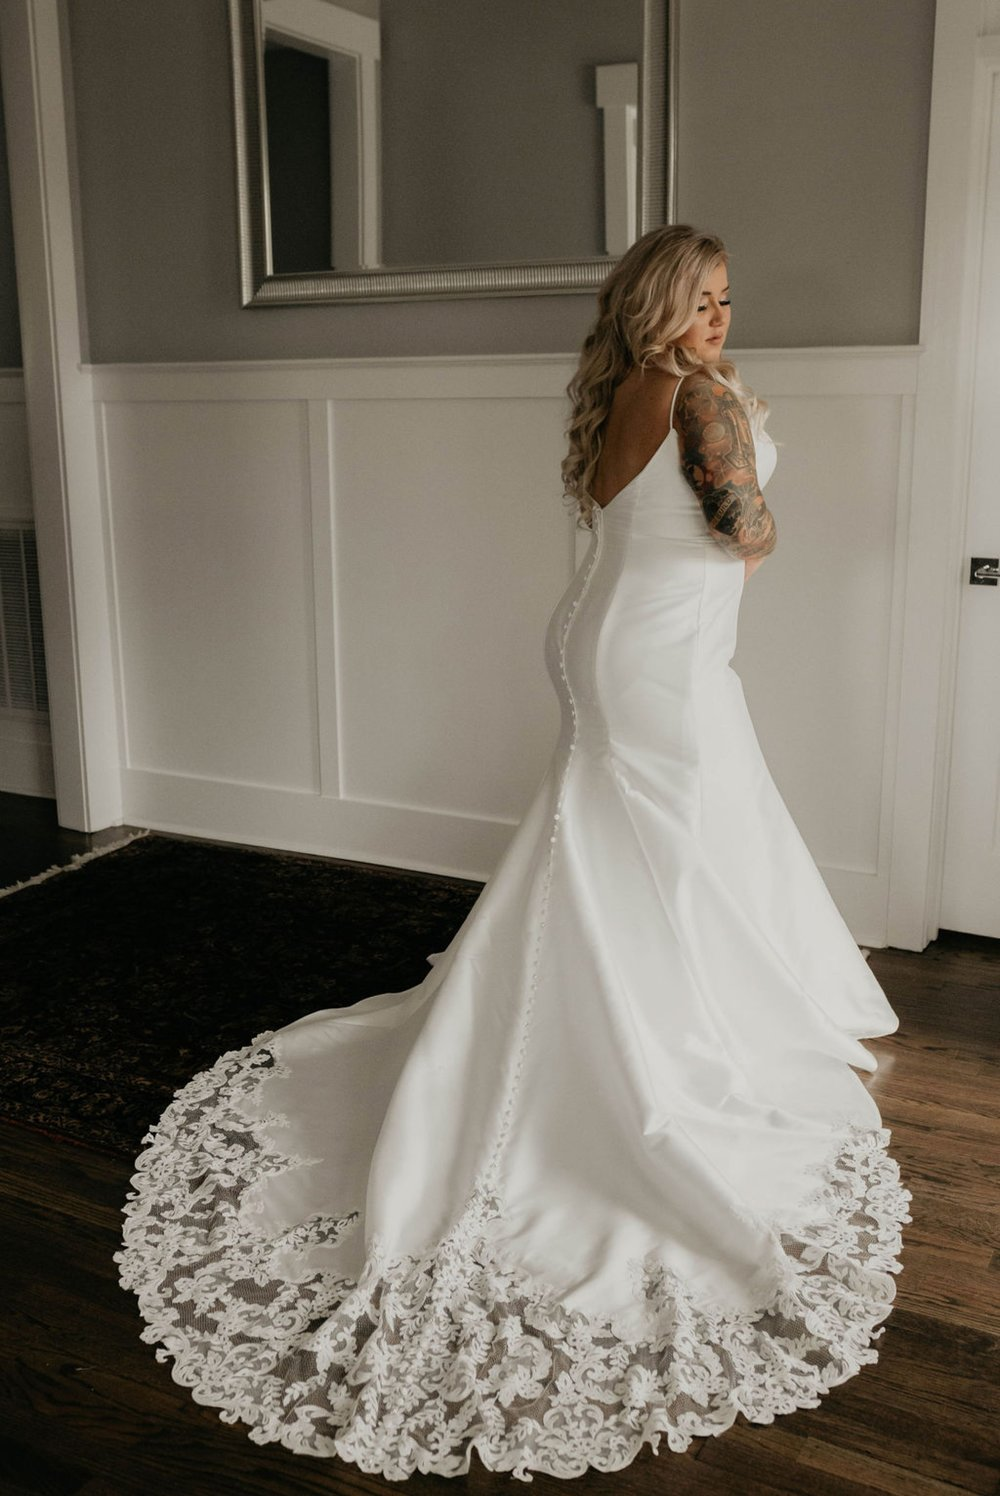 Bride in an allure bridals mermaid gown getting ready before the wedding - Matt Smarsh and Johanna Dye - suites by the black tux - Raleigh North Carolina Urban Edgy Downtown Wedding - suits by the black tux